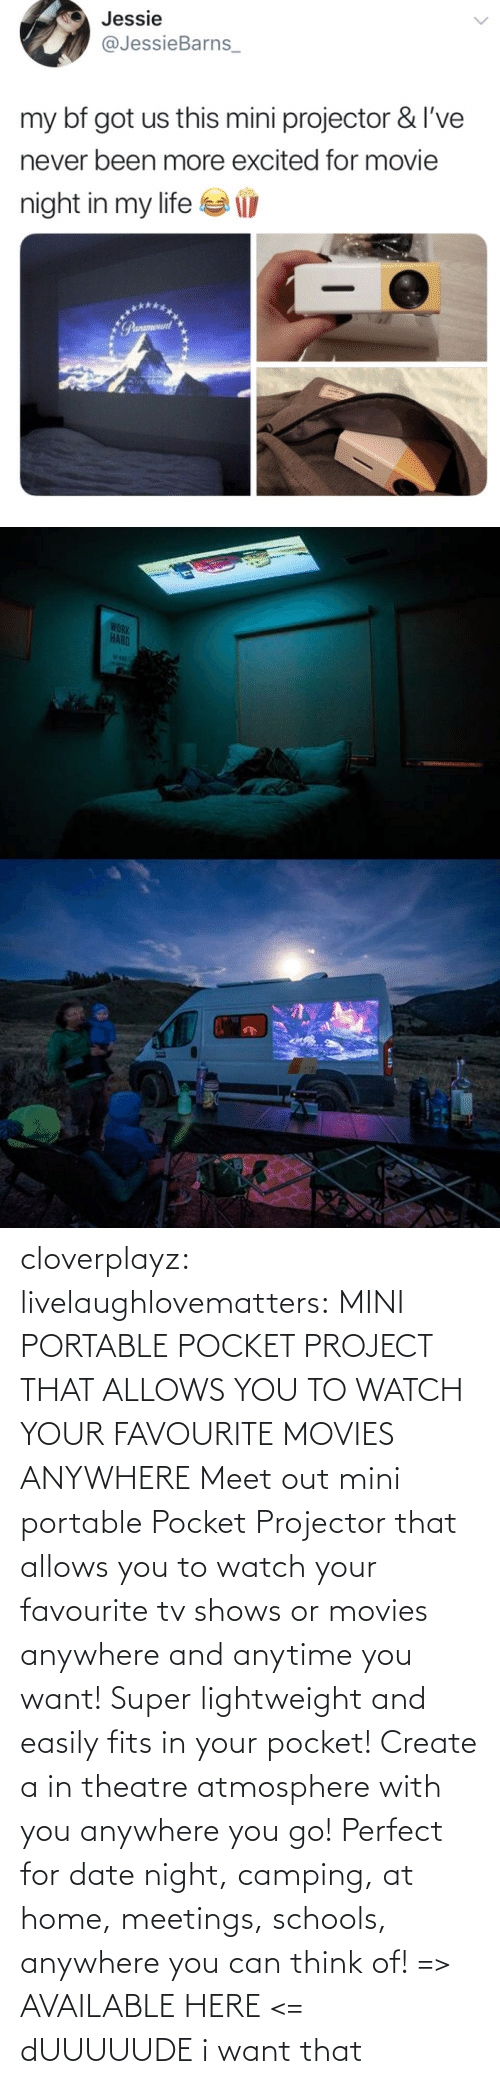 Lightweight: cloverplayz: livelaughlovematters:  MINI PORTABLE POCKET PROJECT THAT ALLOWS YOU TO WATCH YOUR FAVOURITE MOVIES ANYWHERE Meet out mini portable Pocket Projector that allows you to watch your favourite tv shows or movies anywhere and anytime you want! Super lightweight and easily fits in your pocket! Create a in theatre atmosphere with you anywhere you go! Perfect for date night, camping, at home, meetings, schools, anywhere you can think of! => AVAILABLE HERE <=  dUUUUUDE i want that